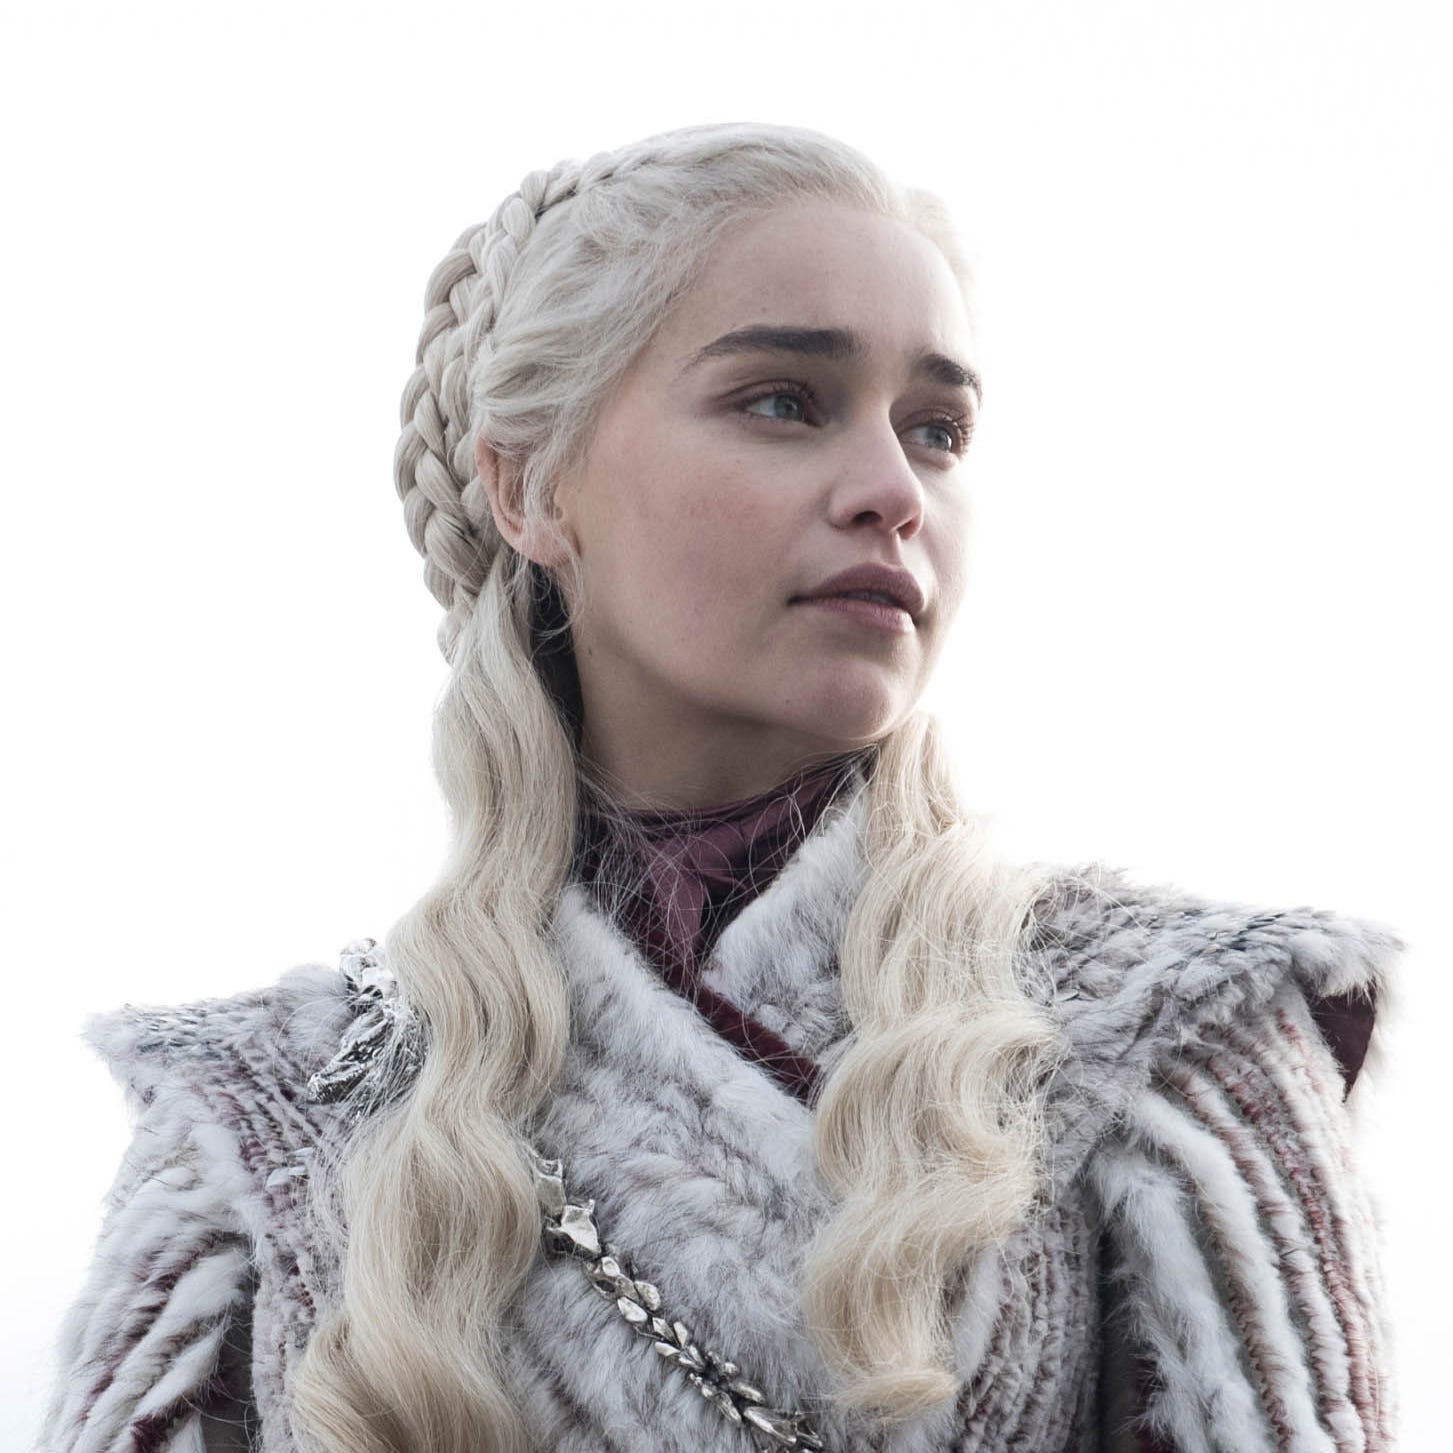 Daenerys Targaryen, 'Game of Thrones' and the 2020 presidential election